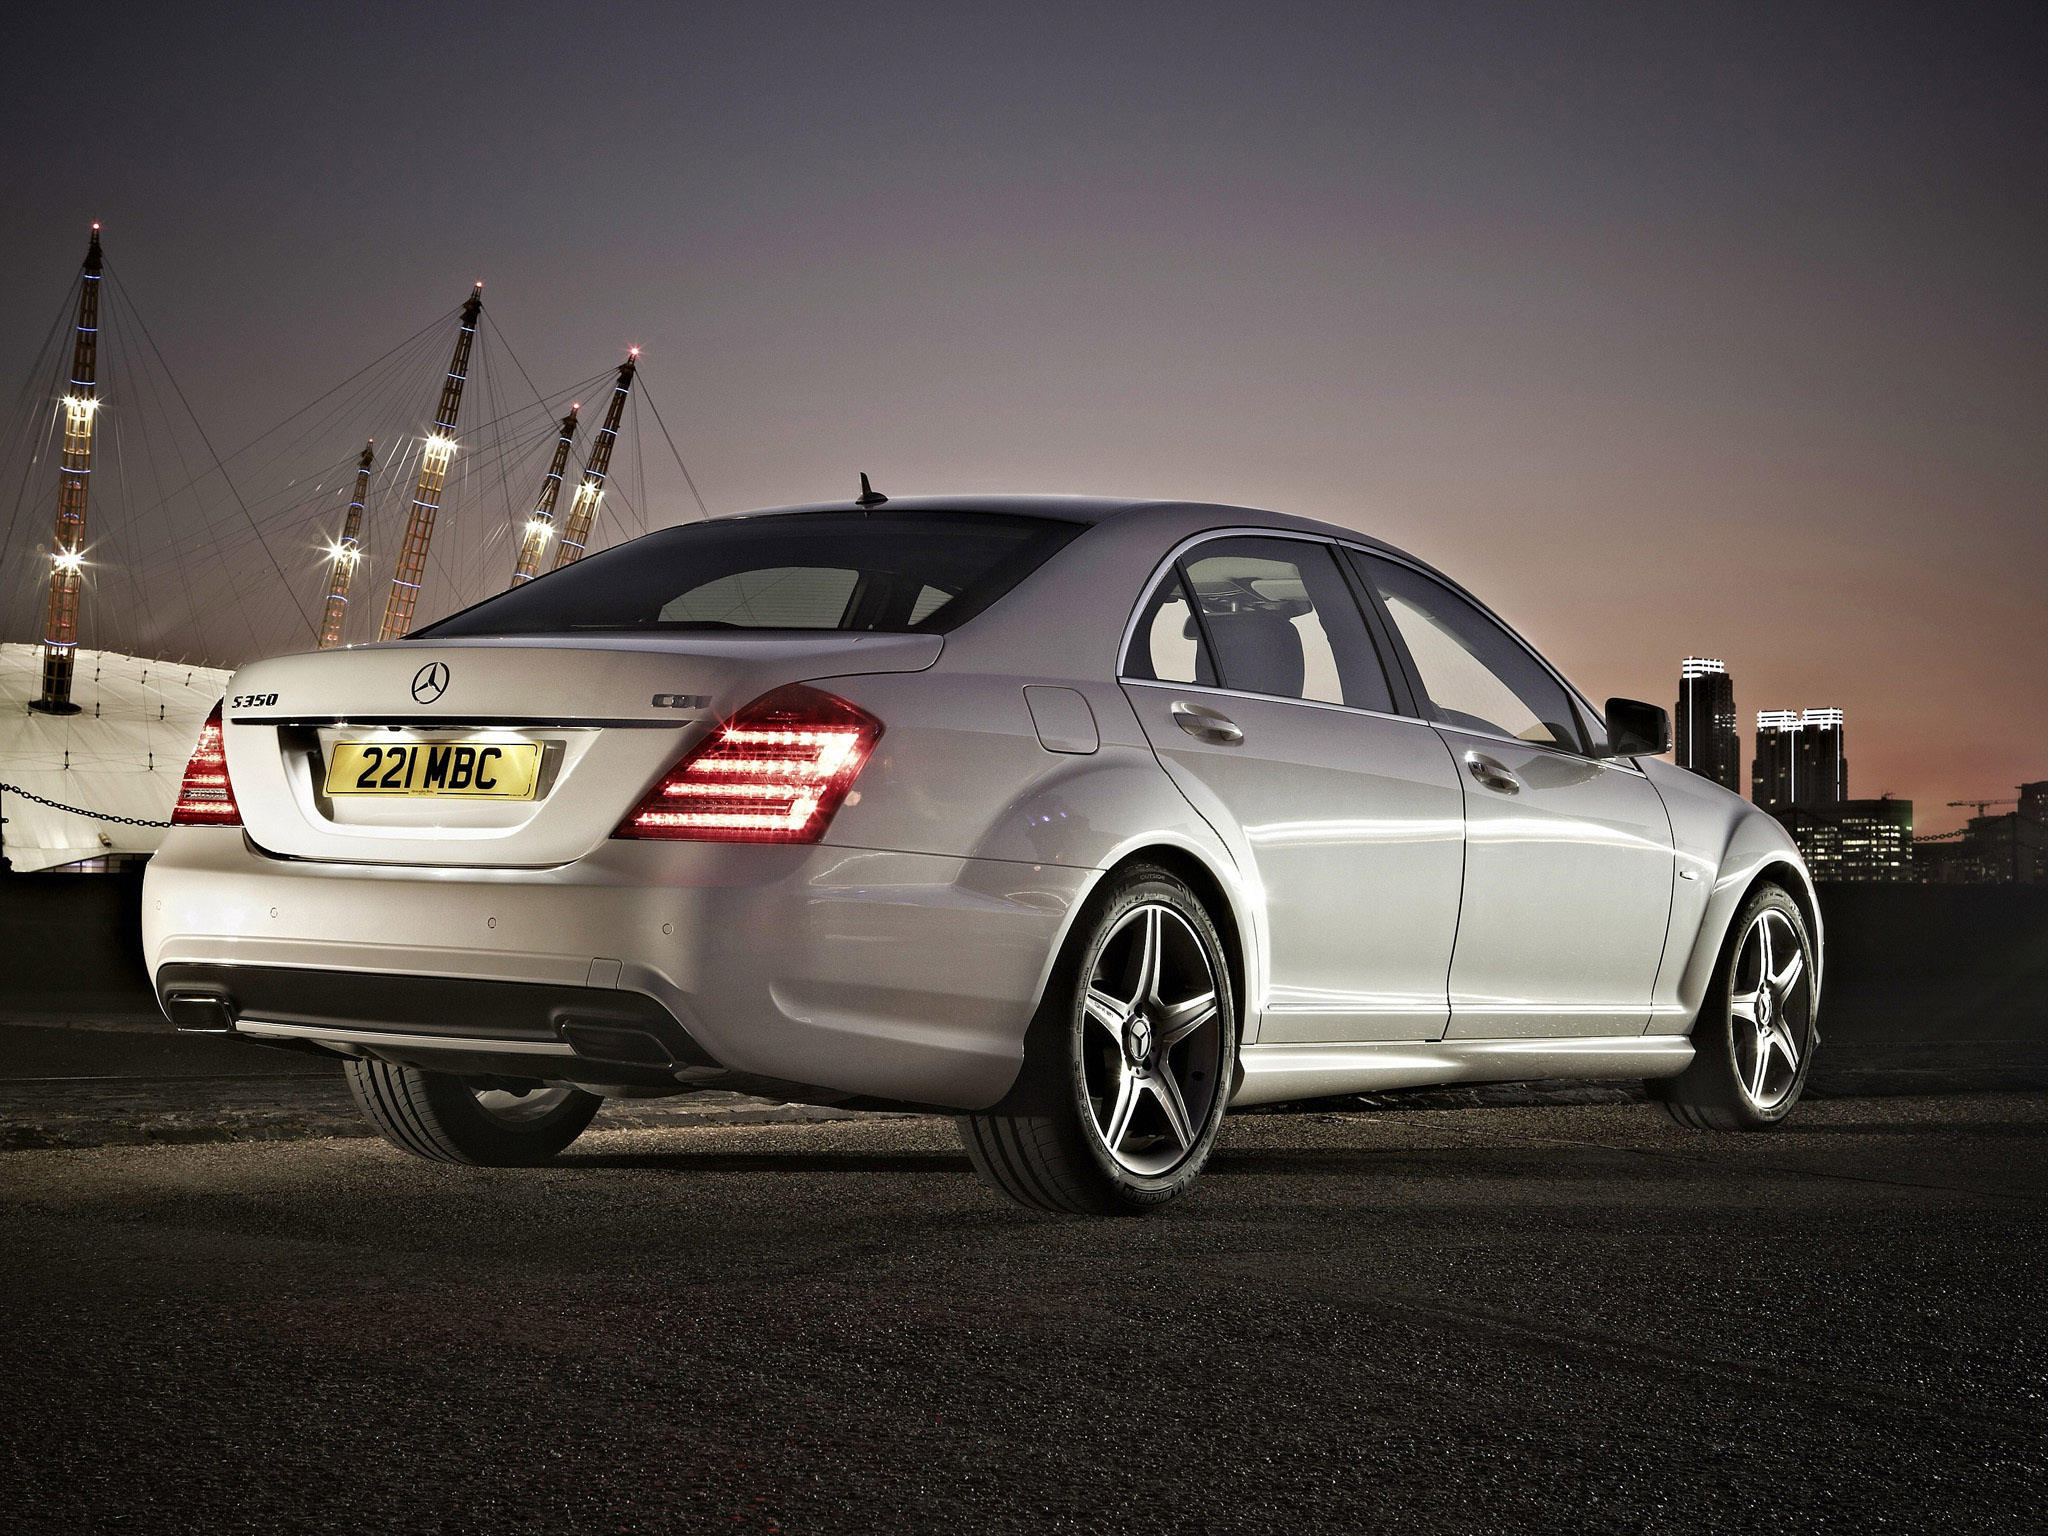 mercedes s klasse s350 cdi amg sports package uk 2009. Black Bedroom Furniture Sets. Home Design Ideas